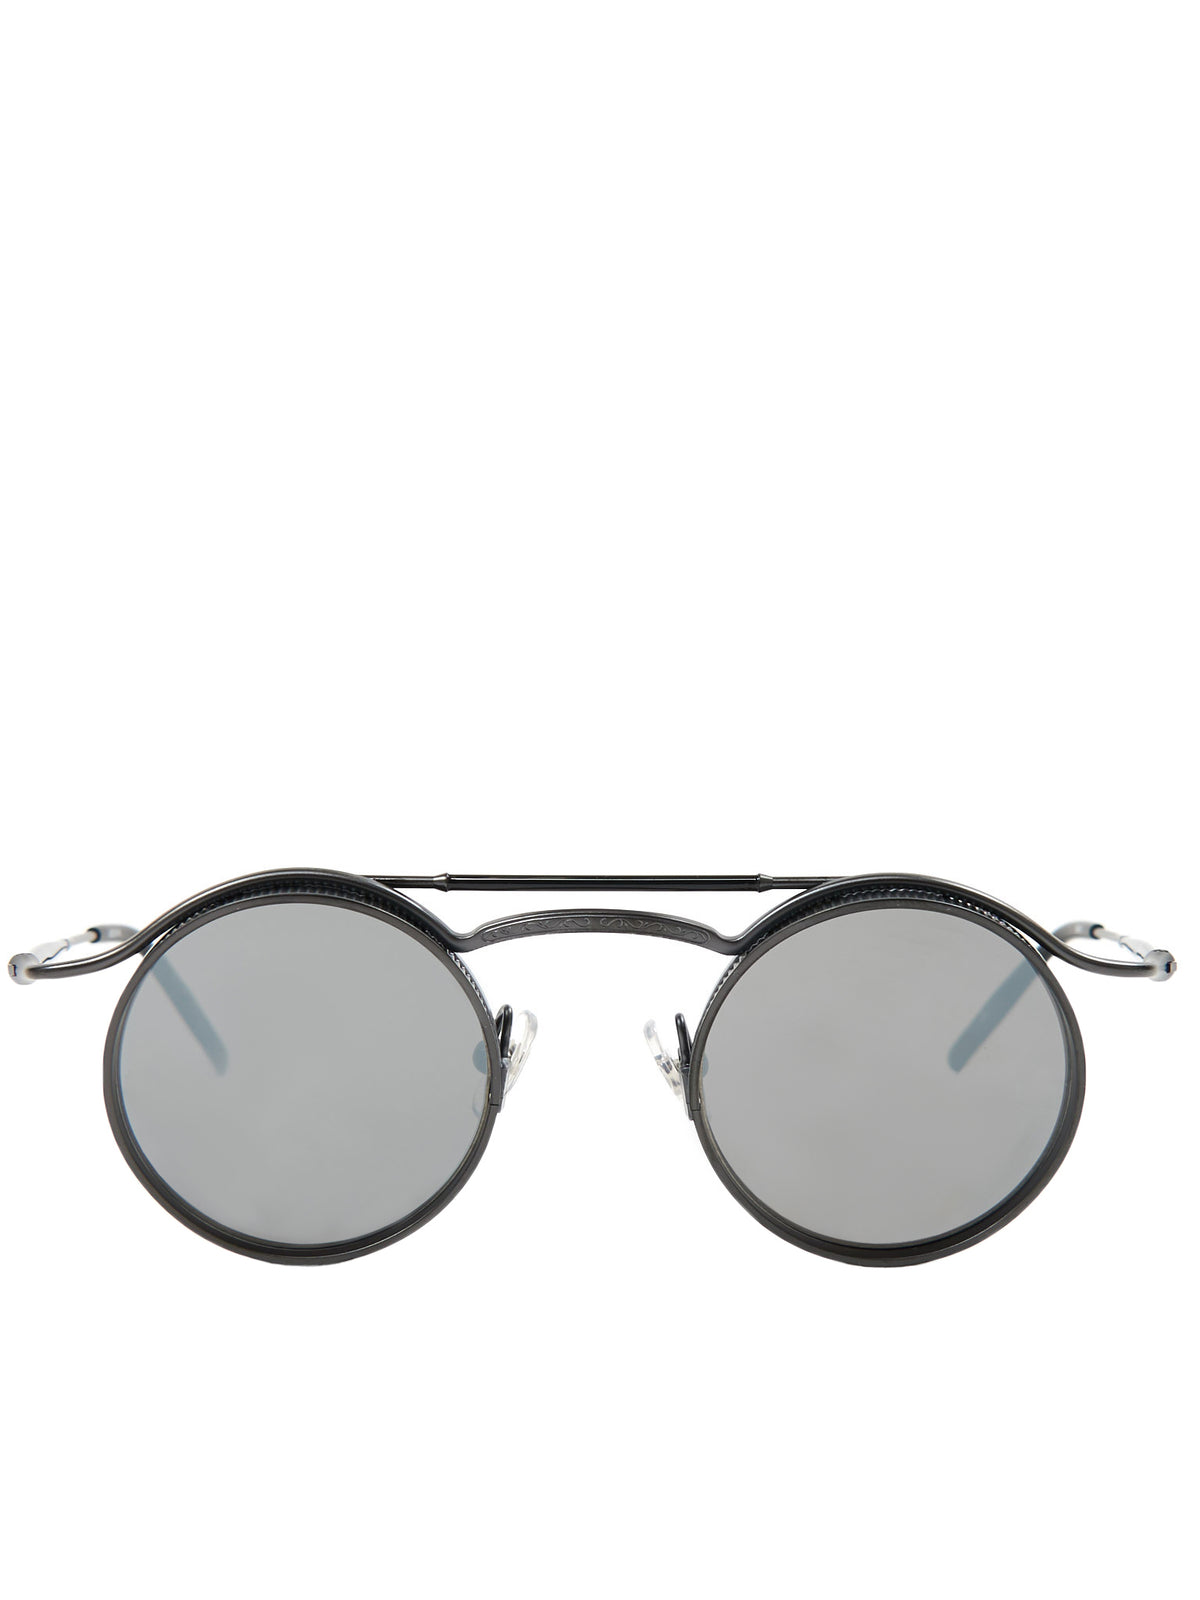 2903H Matte Black Sunglasses (2903H-MATTE-BLACK-SILVER-MIRRO)